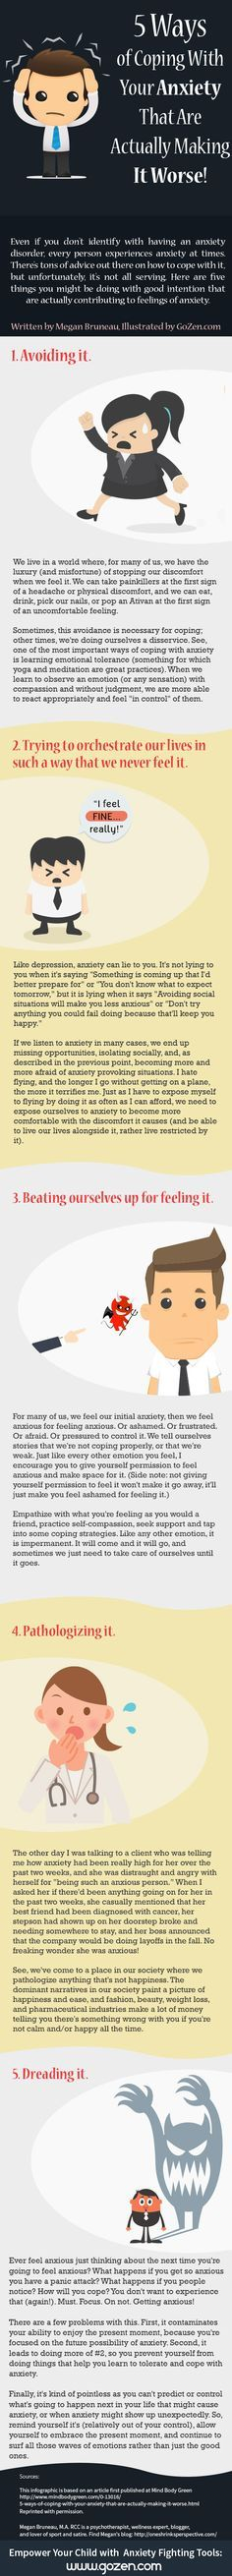 Do you ever get angry at yourself for feeling anxious? Beating yourself up for feeling anxious only multiplies the misery. This is #3 on the list of 5 ways of coping with anxiety that can actually make it worse. Check out the full list below along...